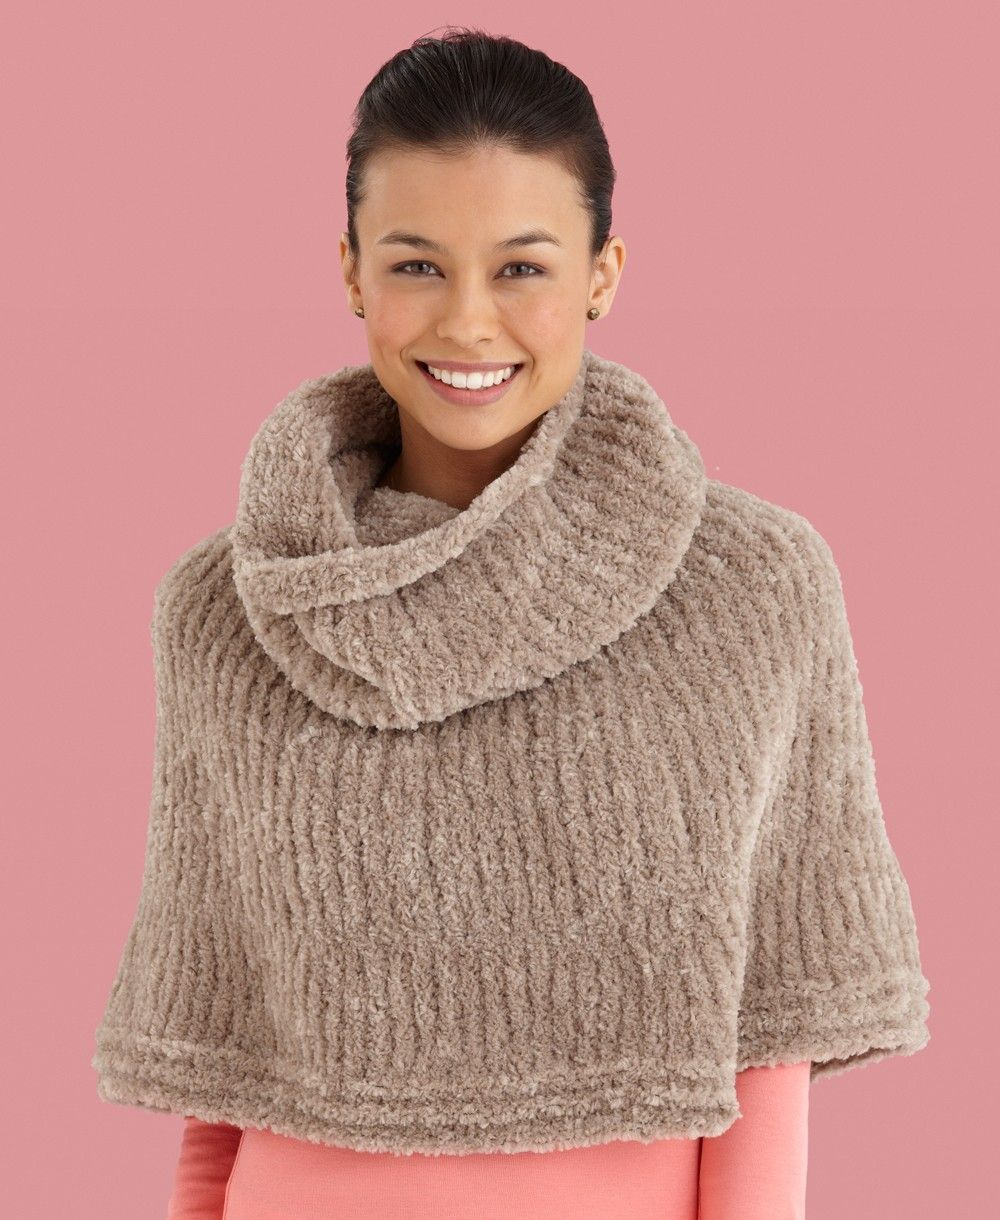 Hooded poncho knit a knit free patterns pinterest hooded hooded poncho knit bankloansurffo Image collections